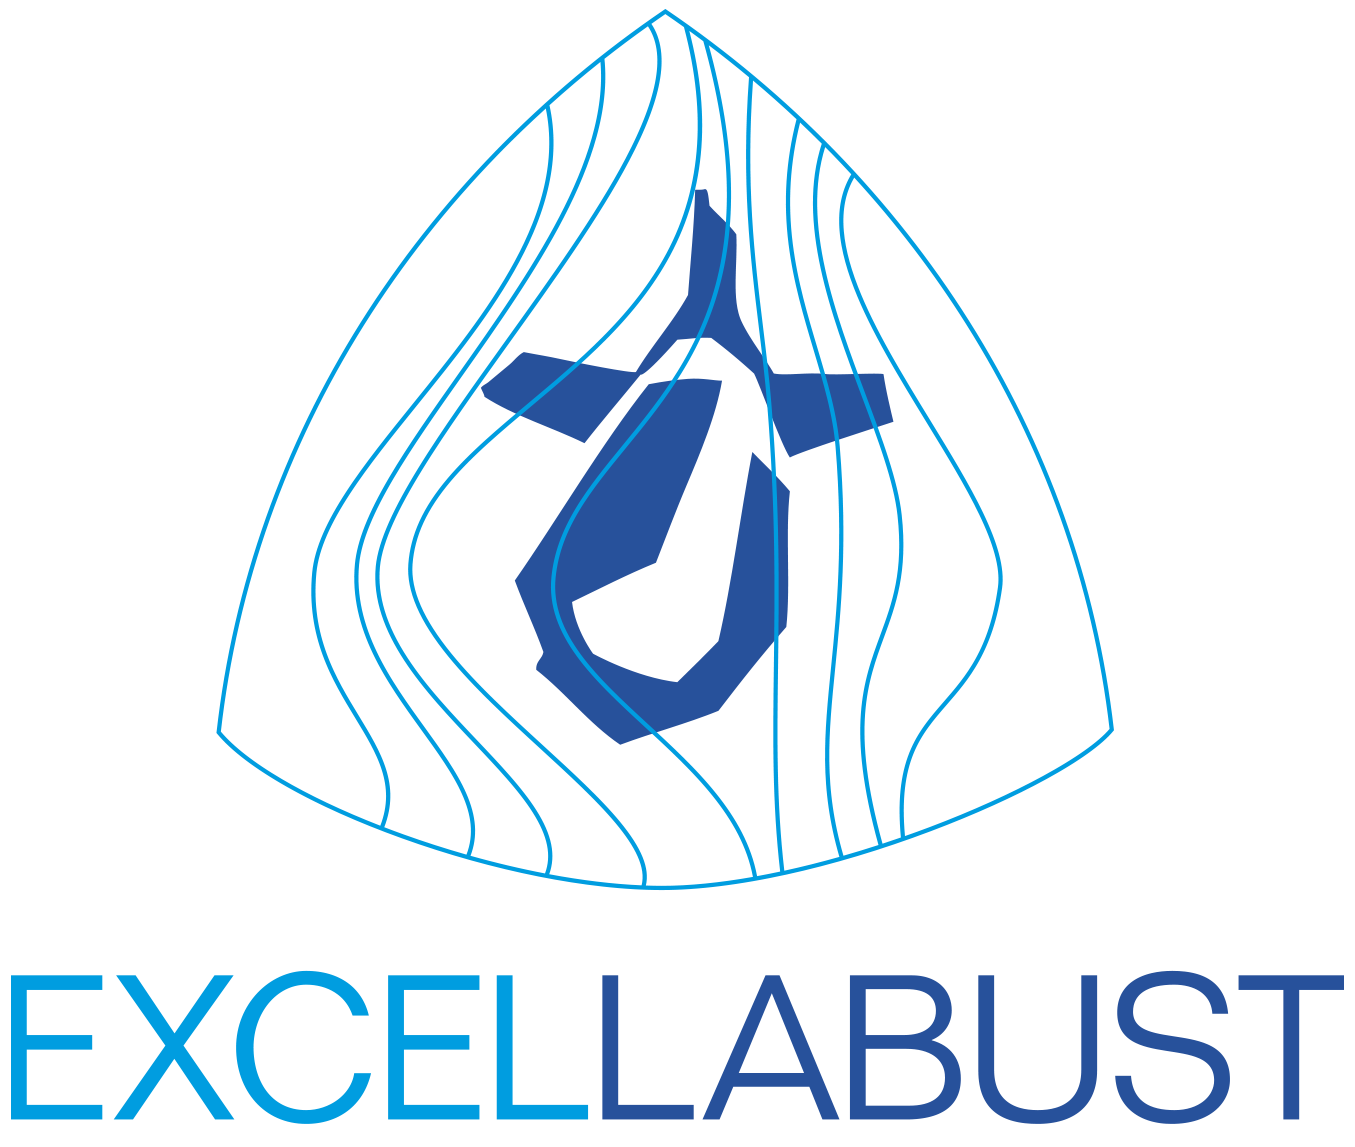 excellabust labust laboratory for underwater systems and excelling labust in marine robotics acronym excellabust funding scheme eu horizon2020